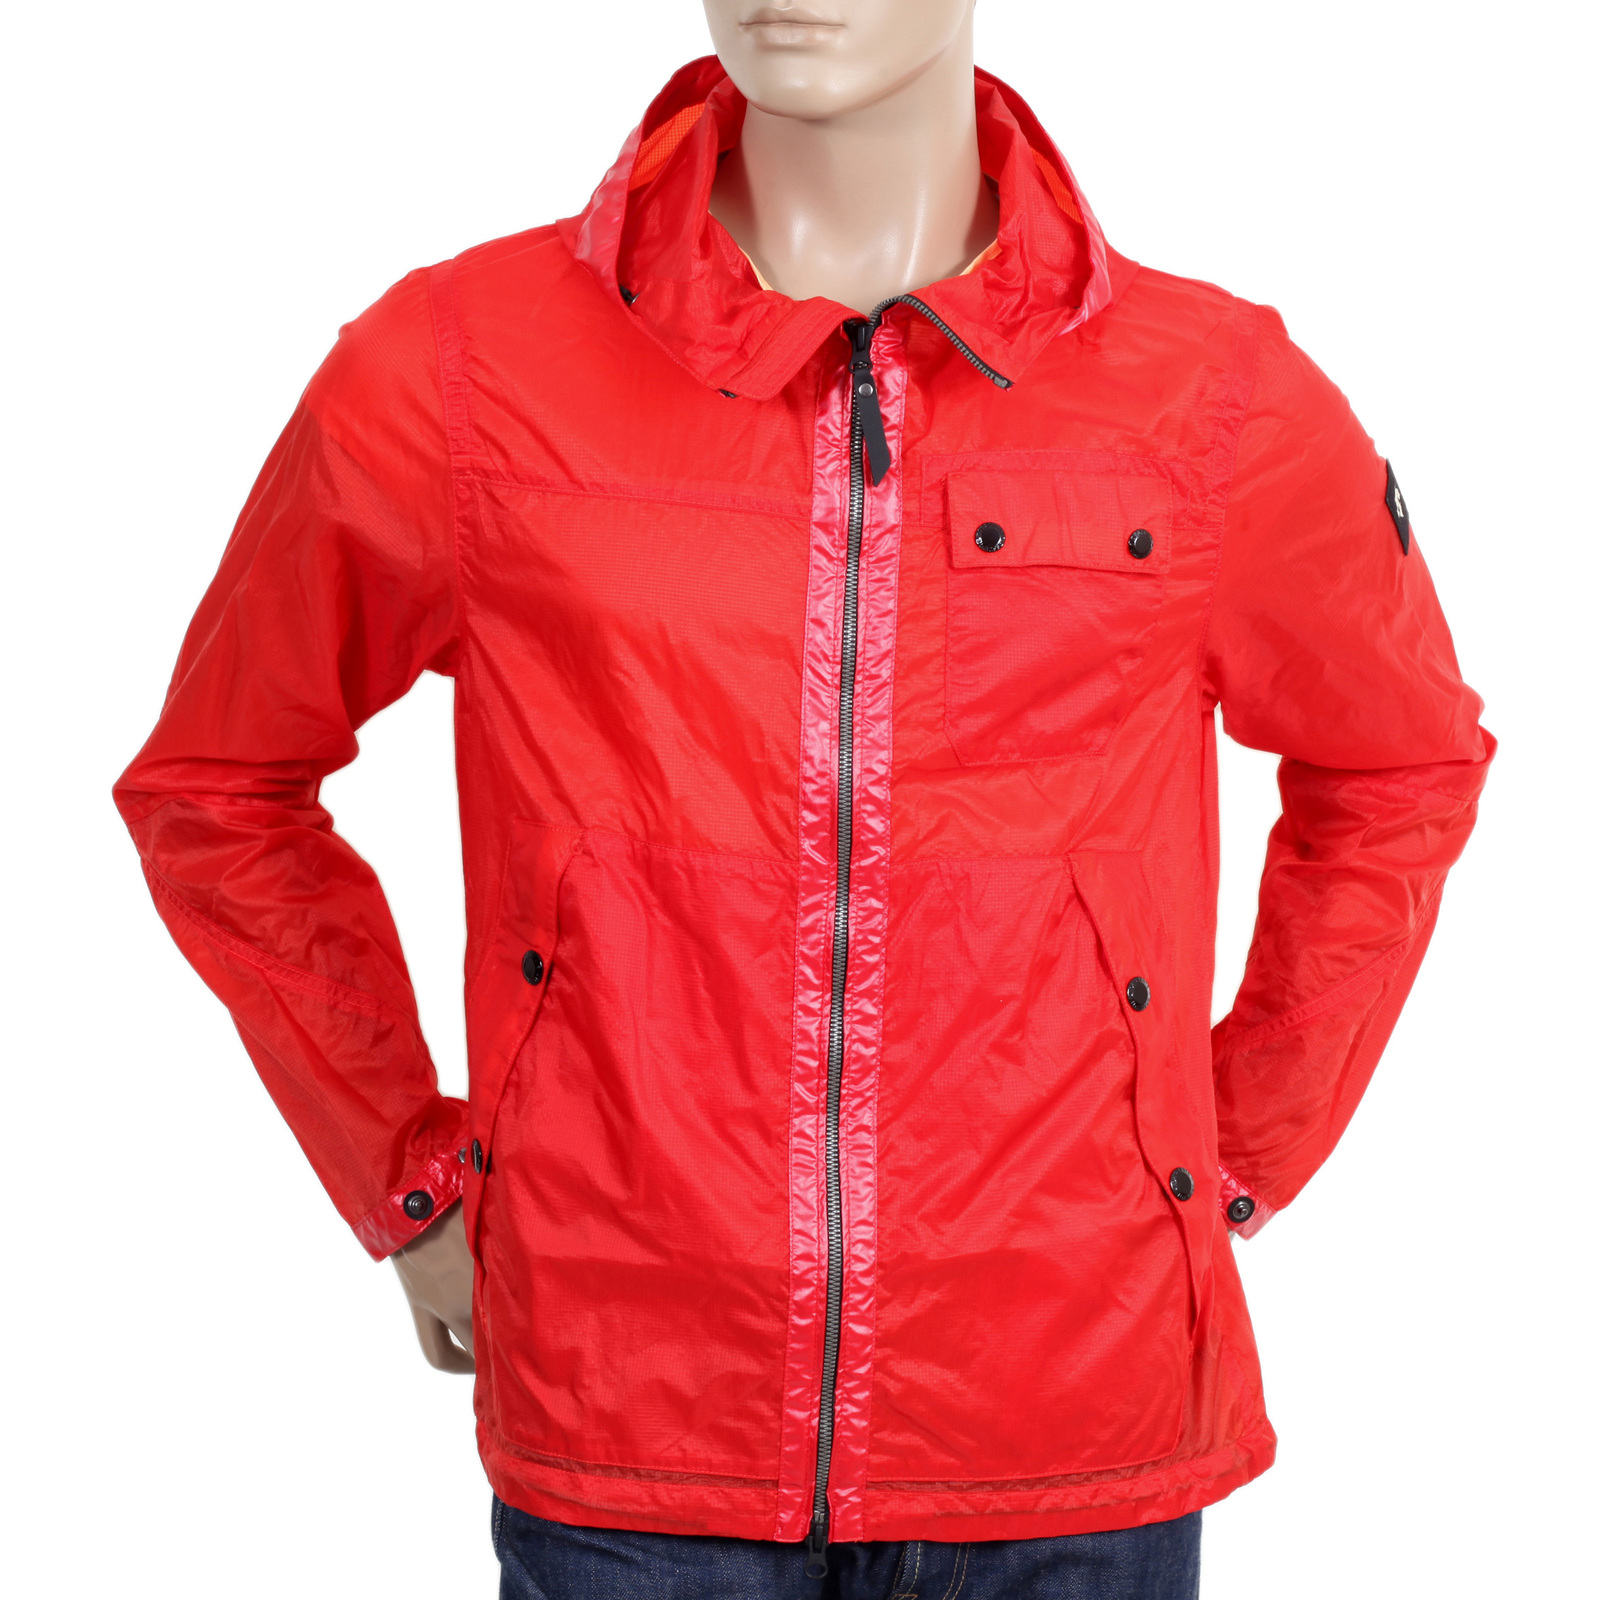 parachute fabric jacket parachute fabric suppliers